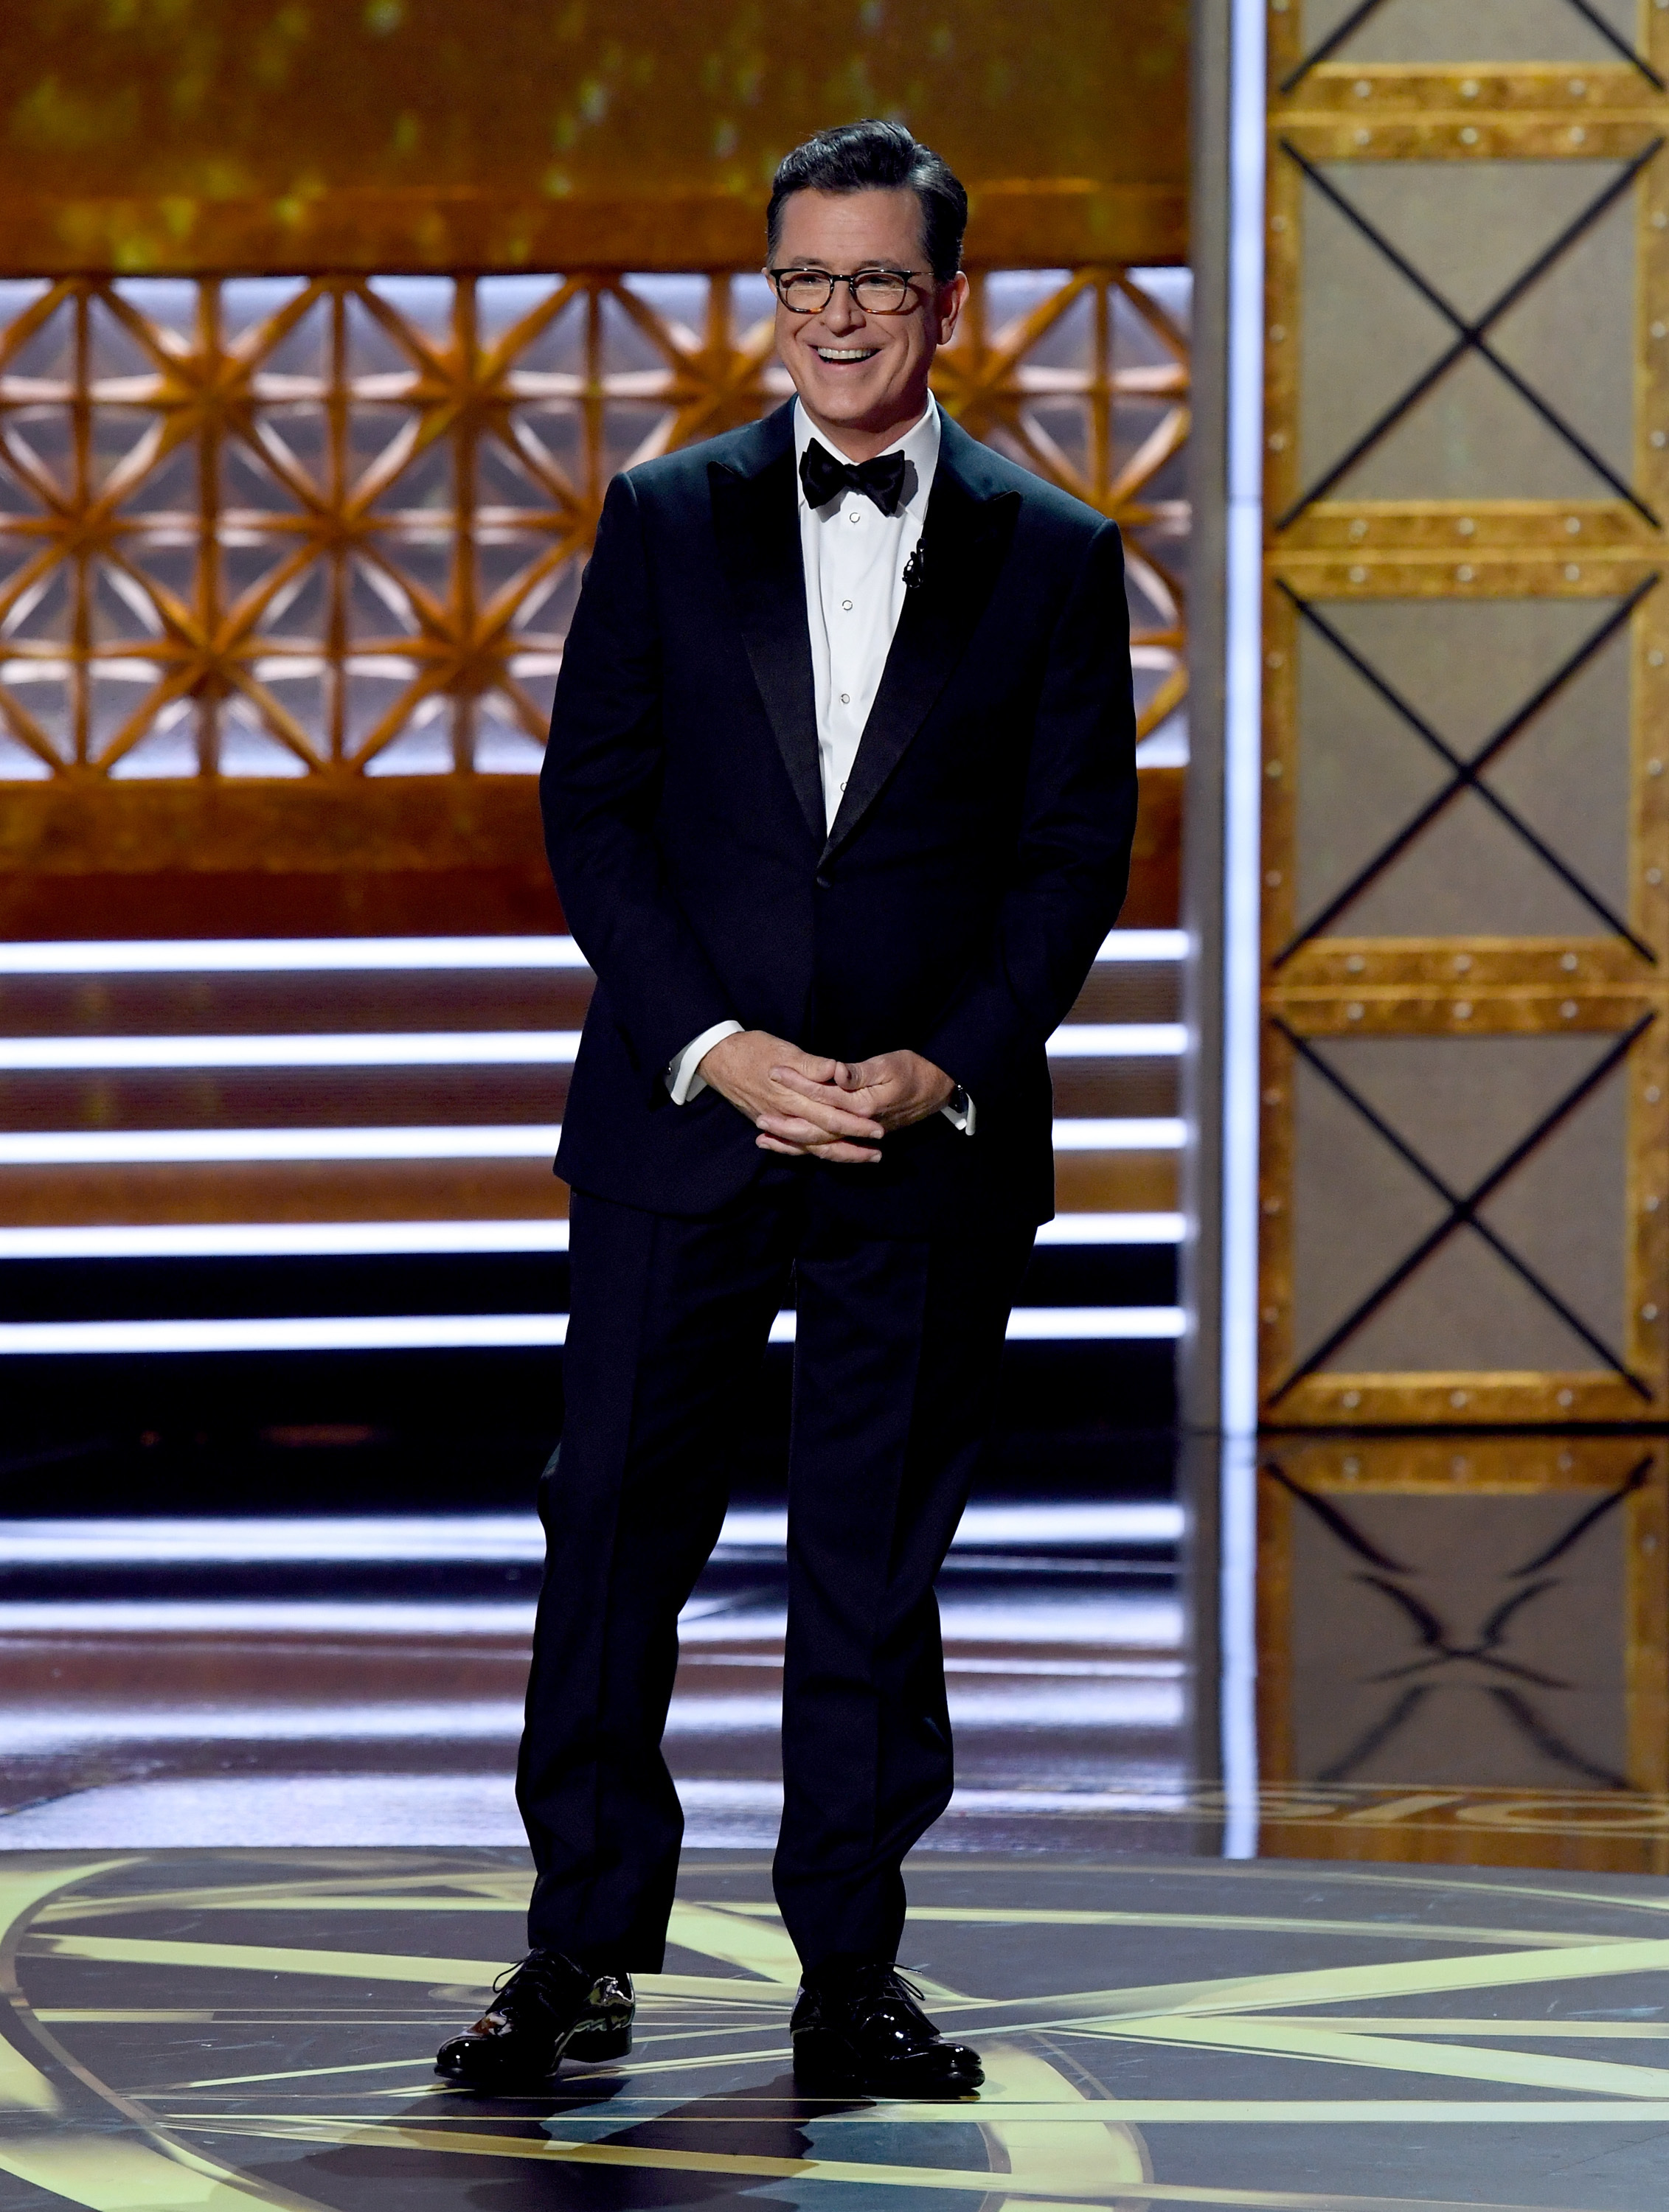 b541c913d 2017 Emmys: What's buzzing, what everyone's talking about | Gallery ...